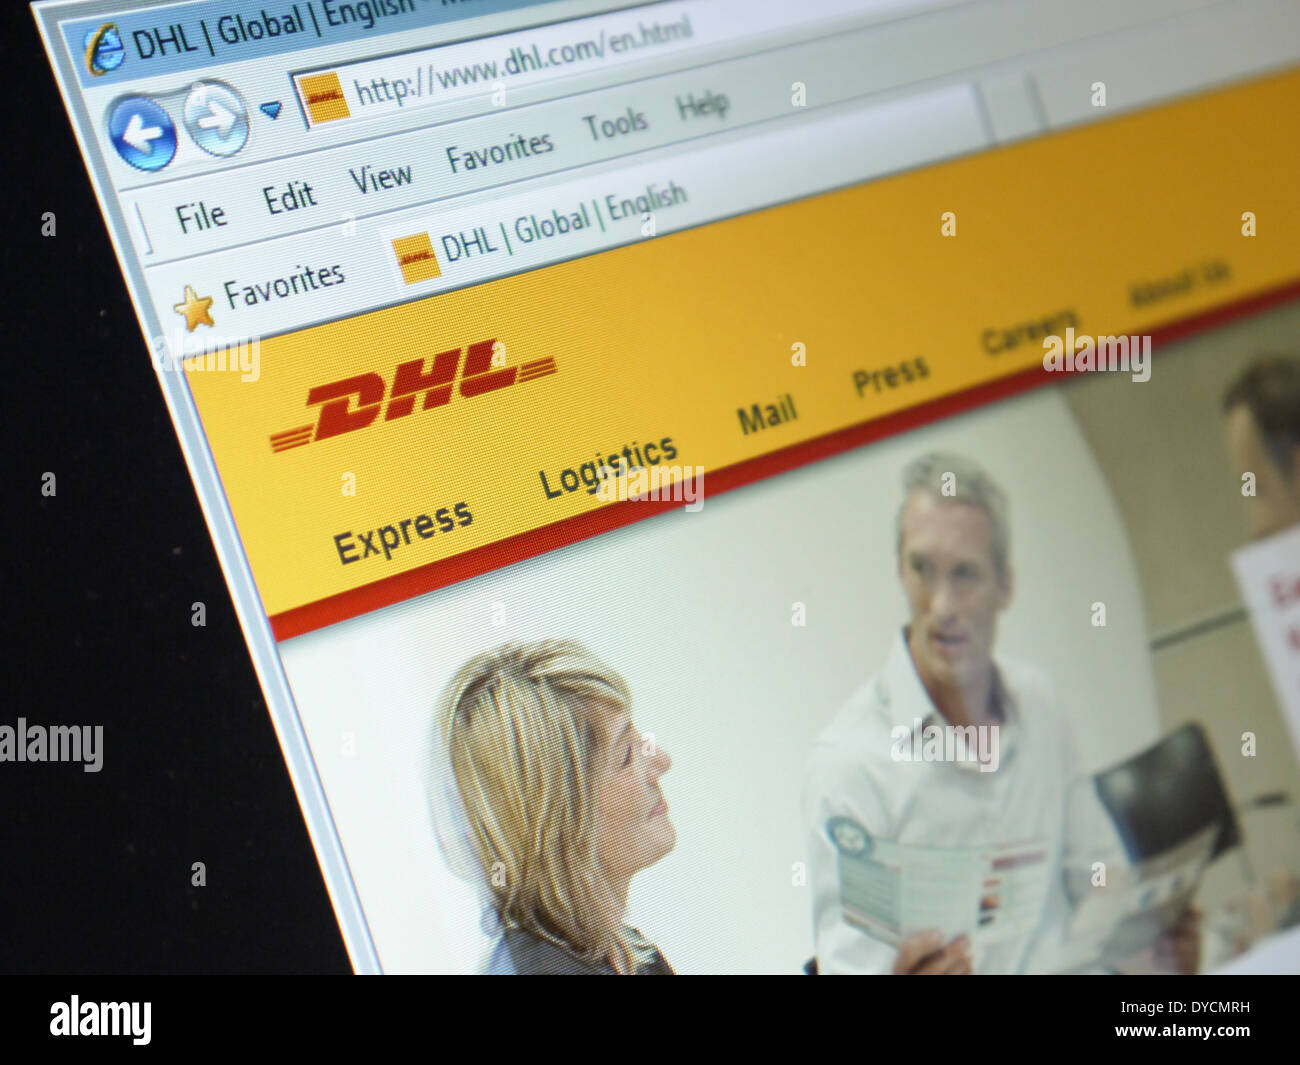 dhl shipping company website - Stock Image